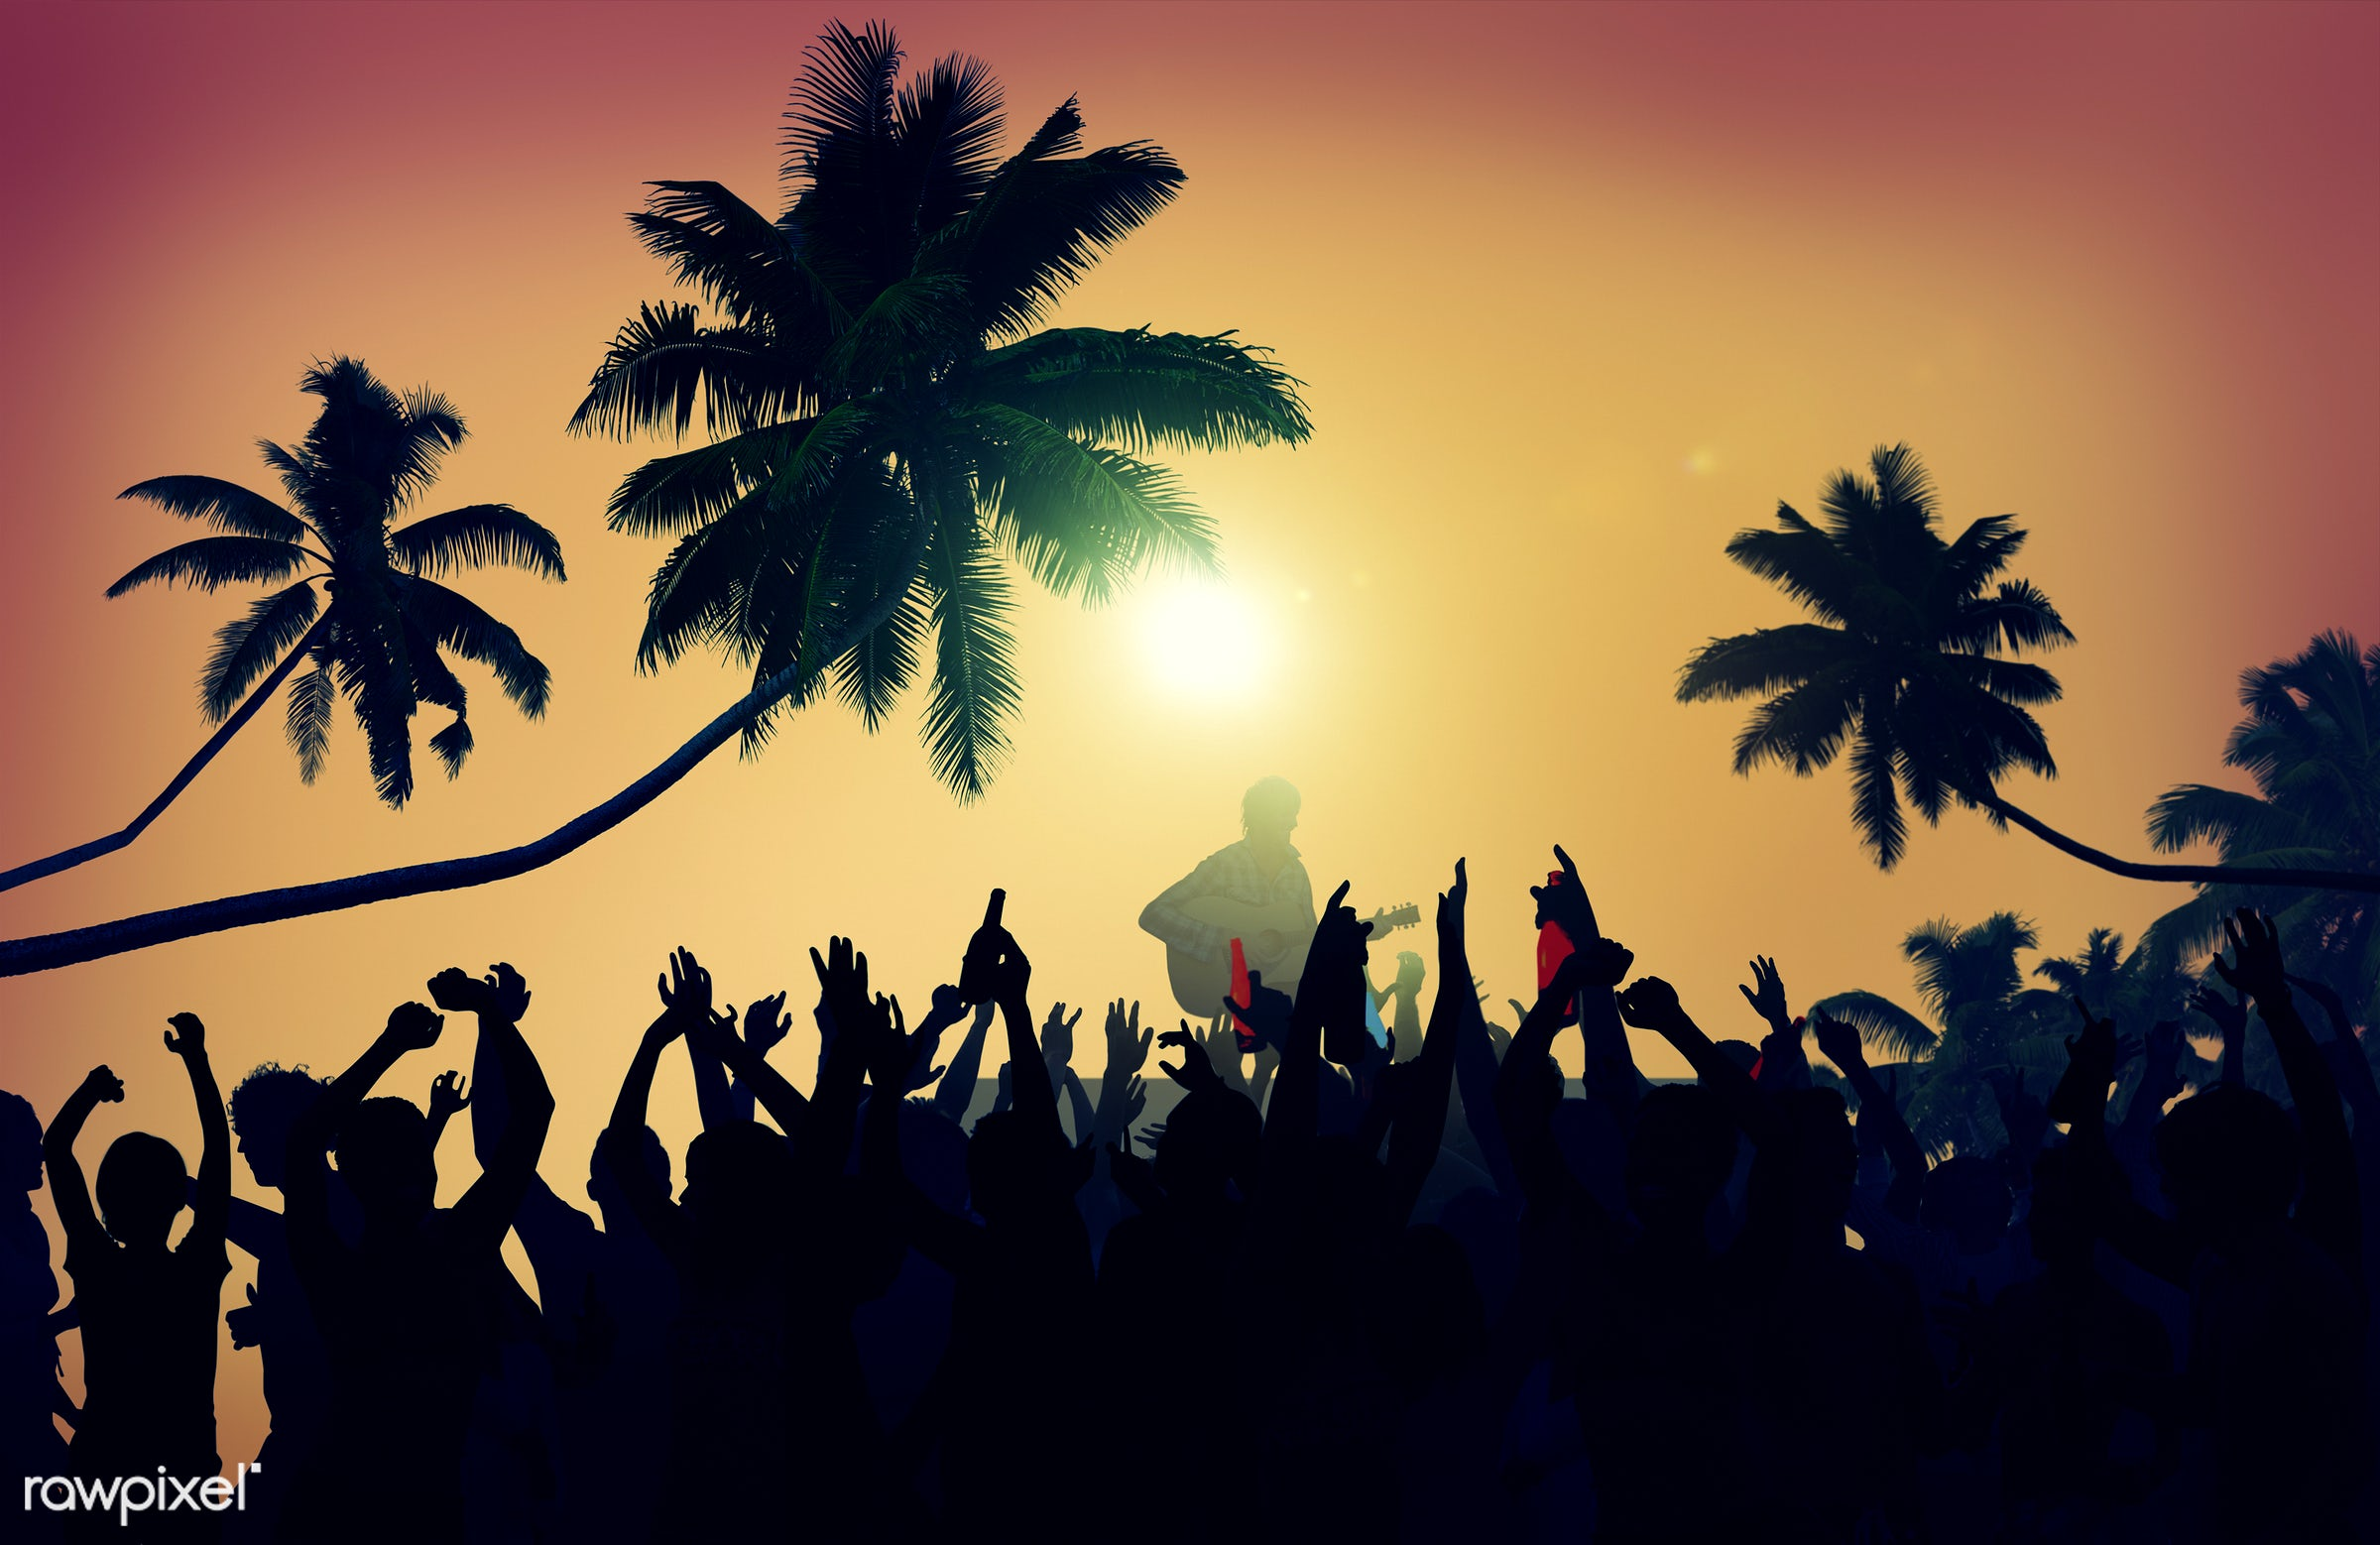 adolescence, audience, back lit, beach, carefree, celebration, cheerful, communication, community, concert, dancing,...